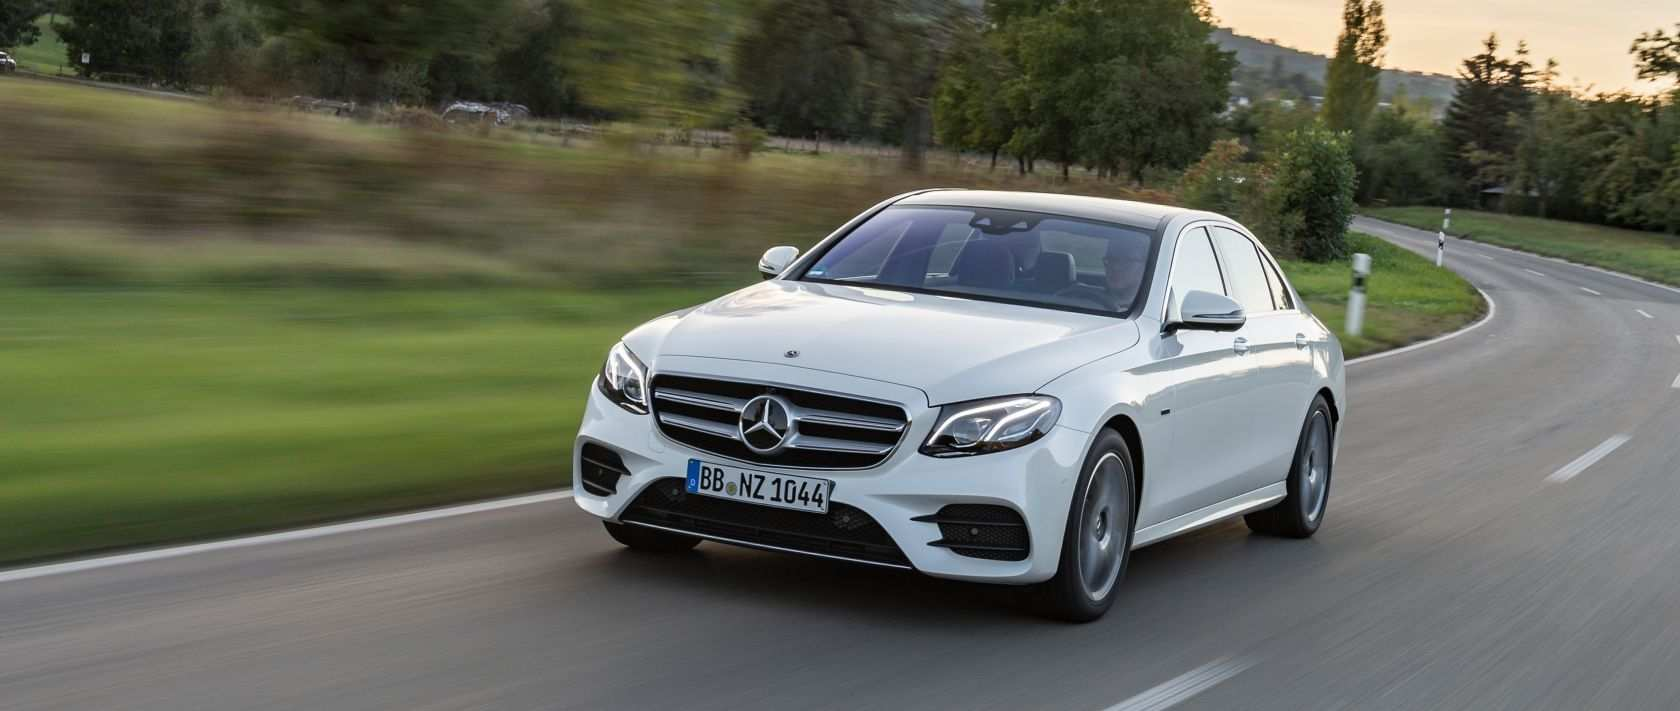 30 All New Pictures Of 2019 Mercedes Benz Performance